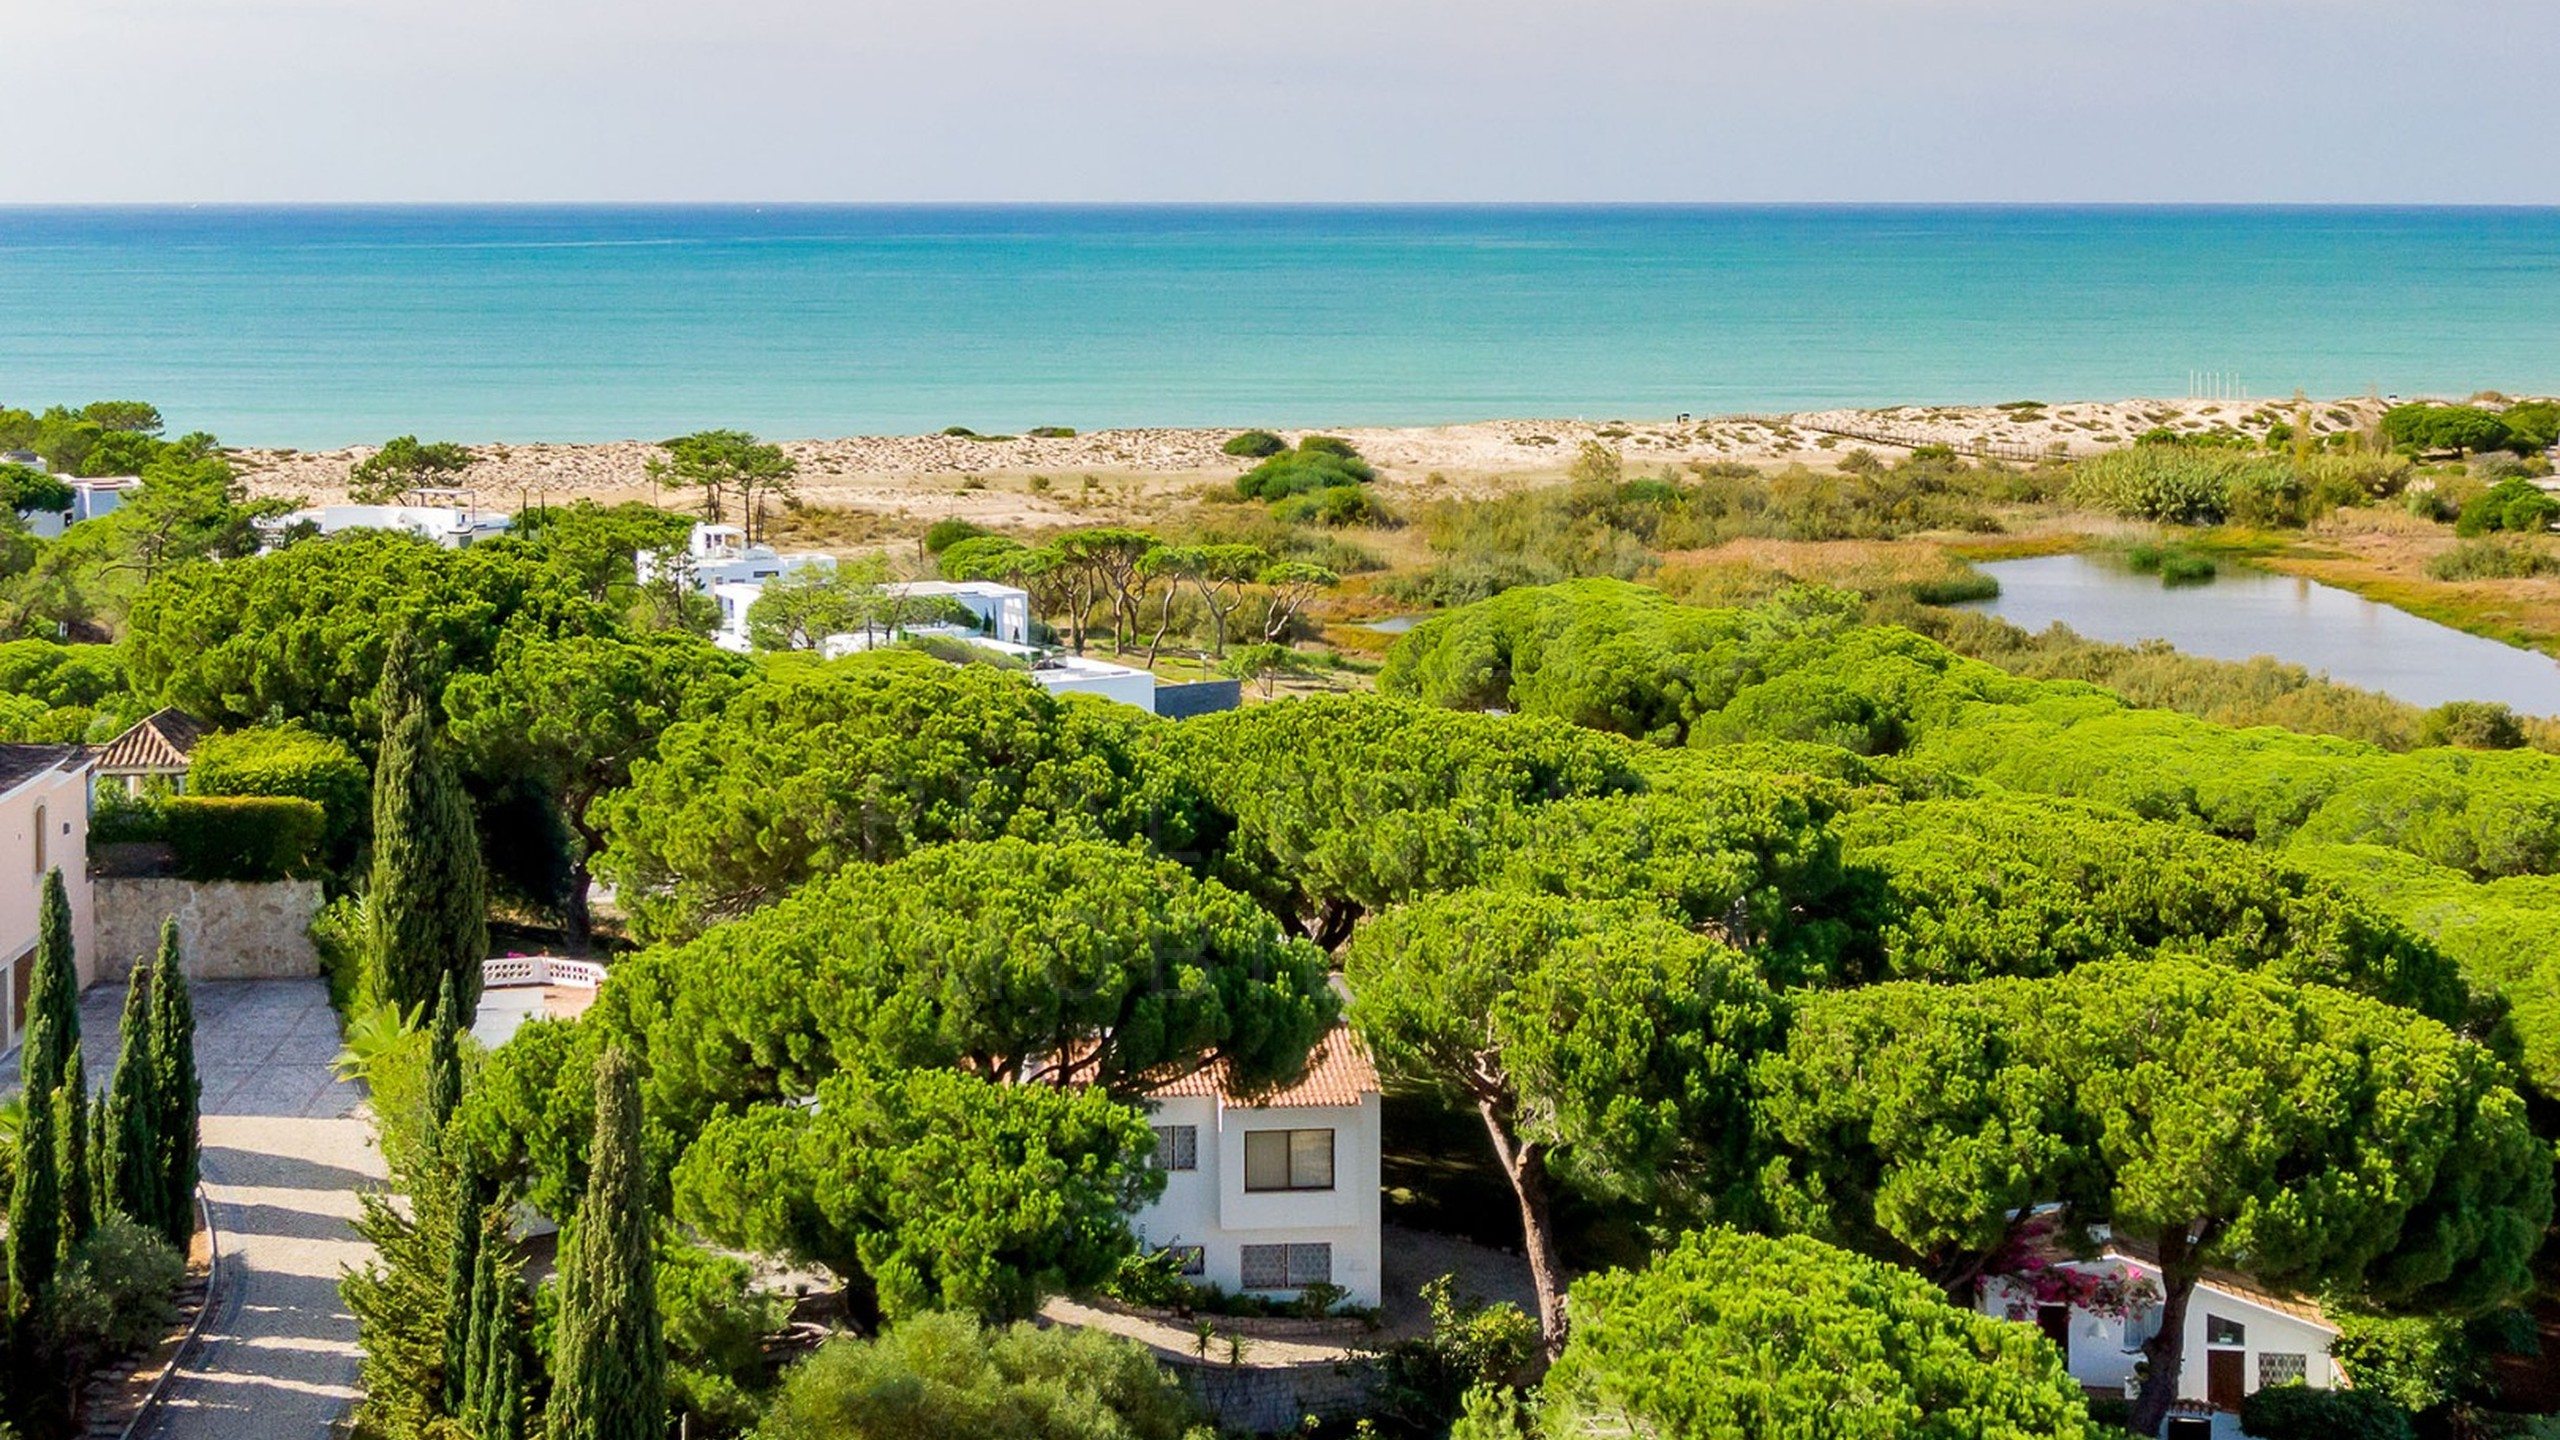 Vila for sale in Vale do Lobo, Algarve